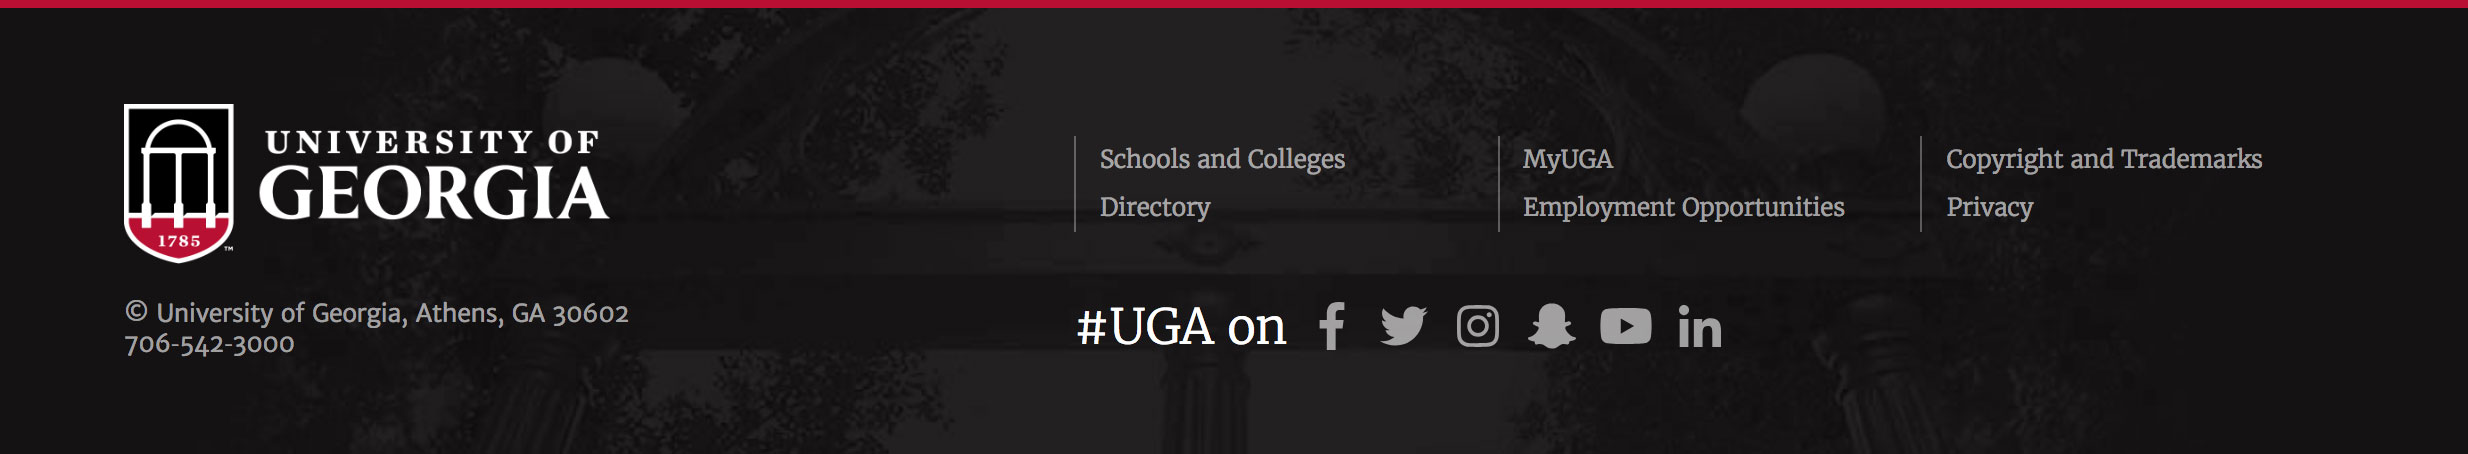 sample UGA global footer